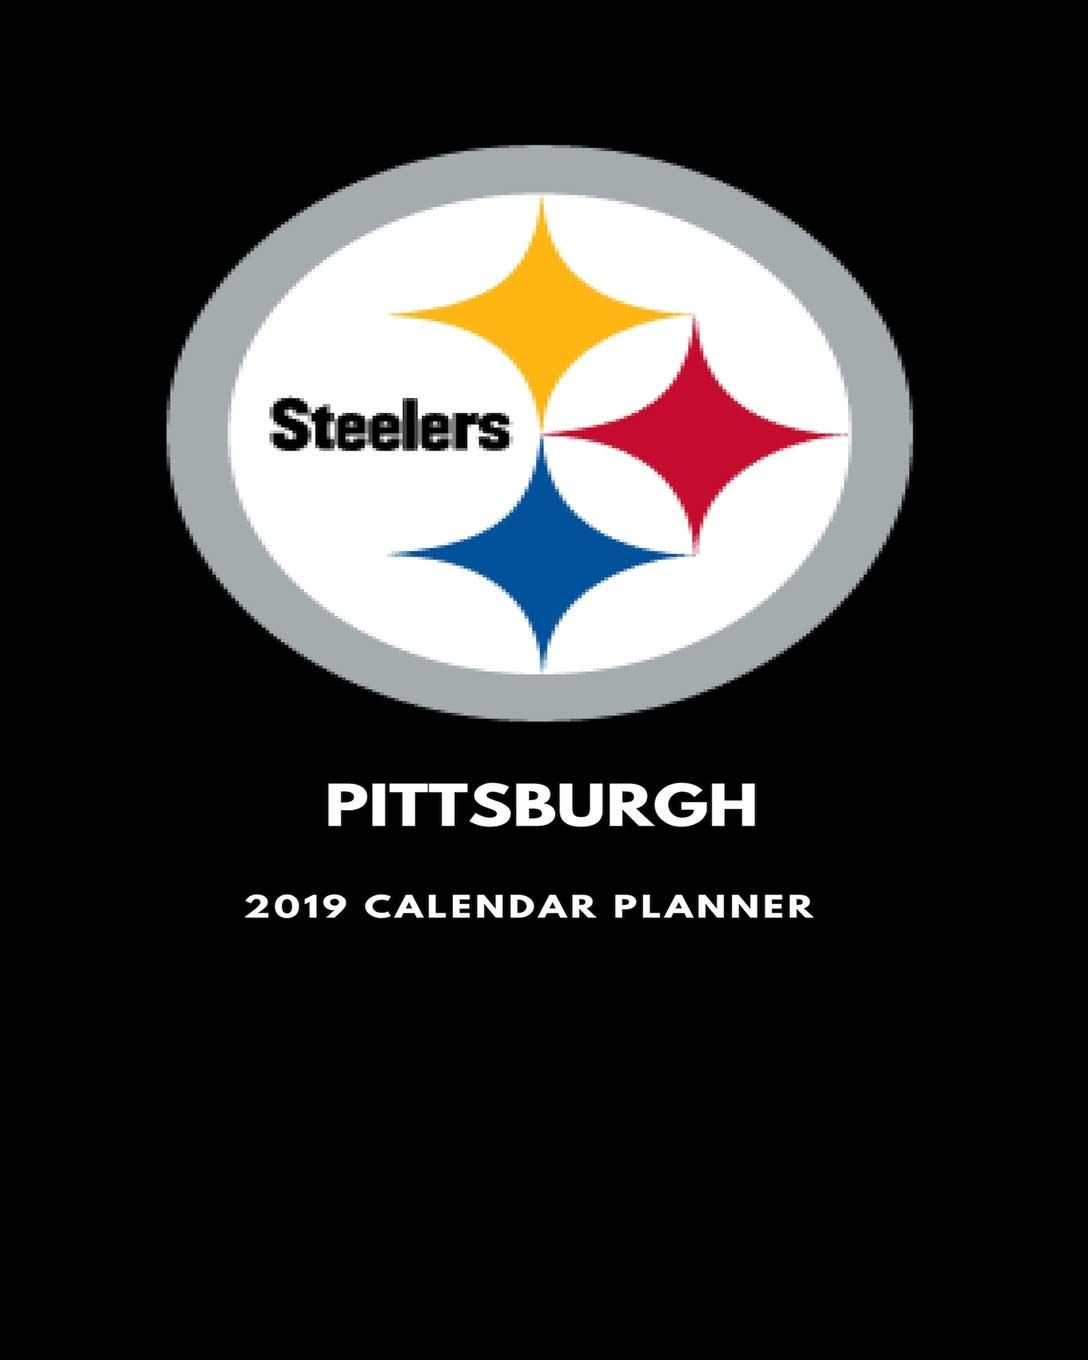 Pittsburgh Steelers 2019 Calendar Planner David Jones is